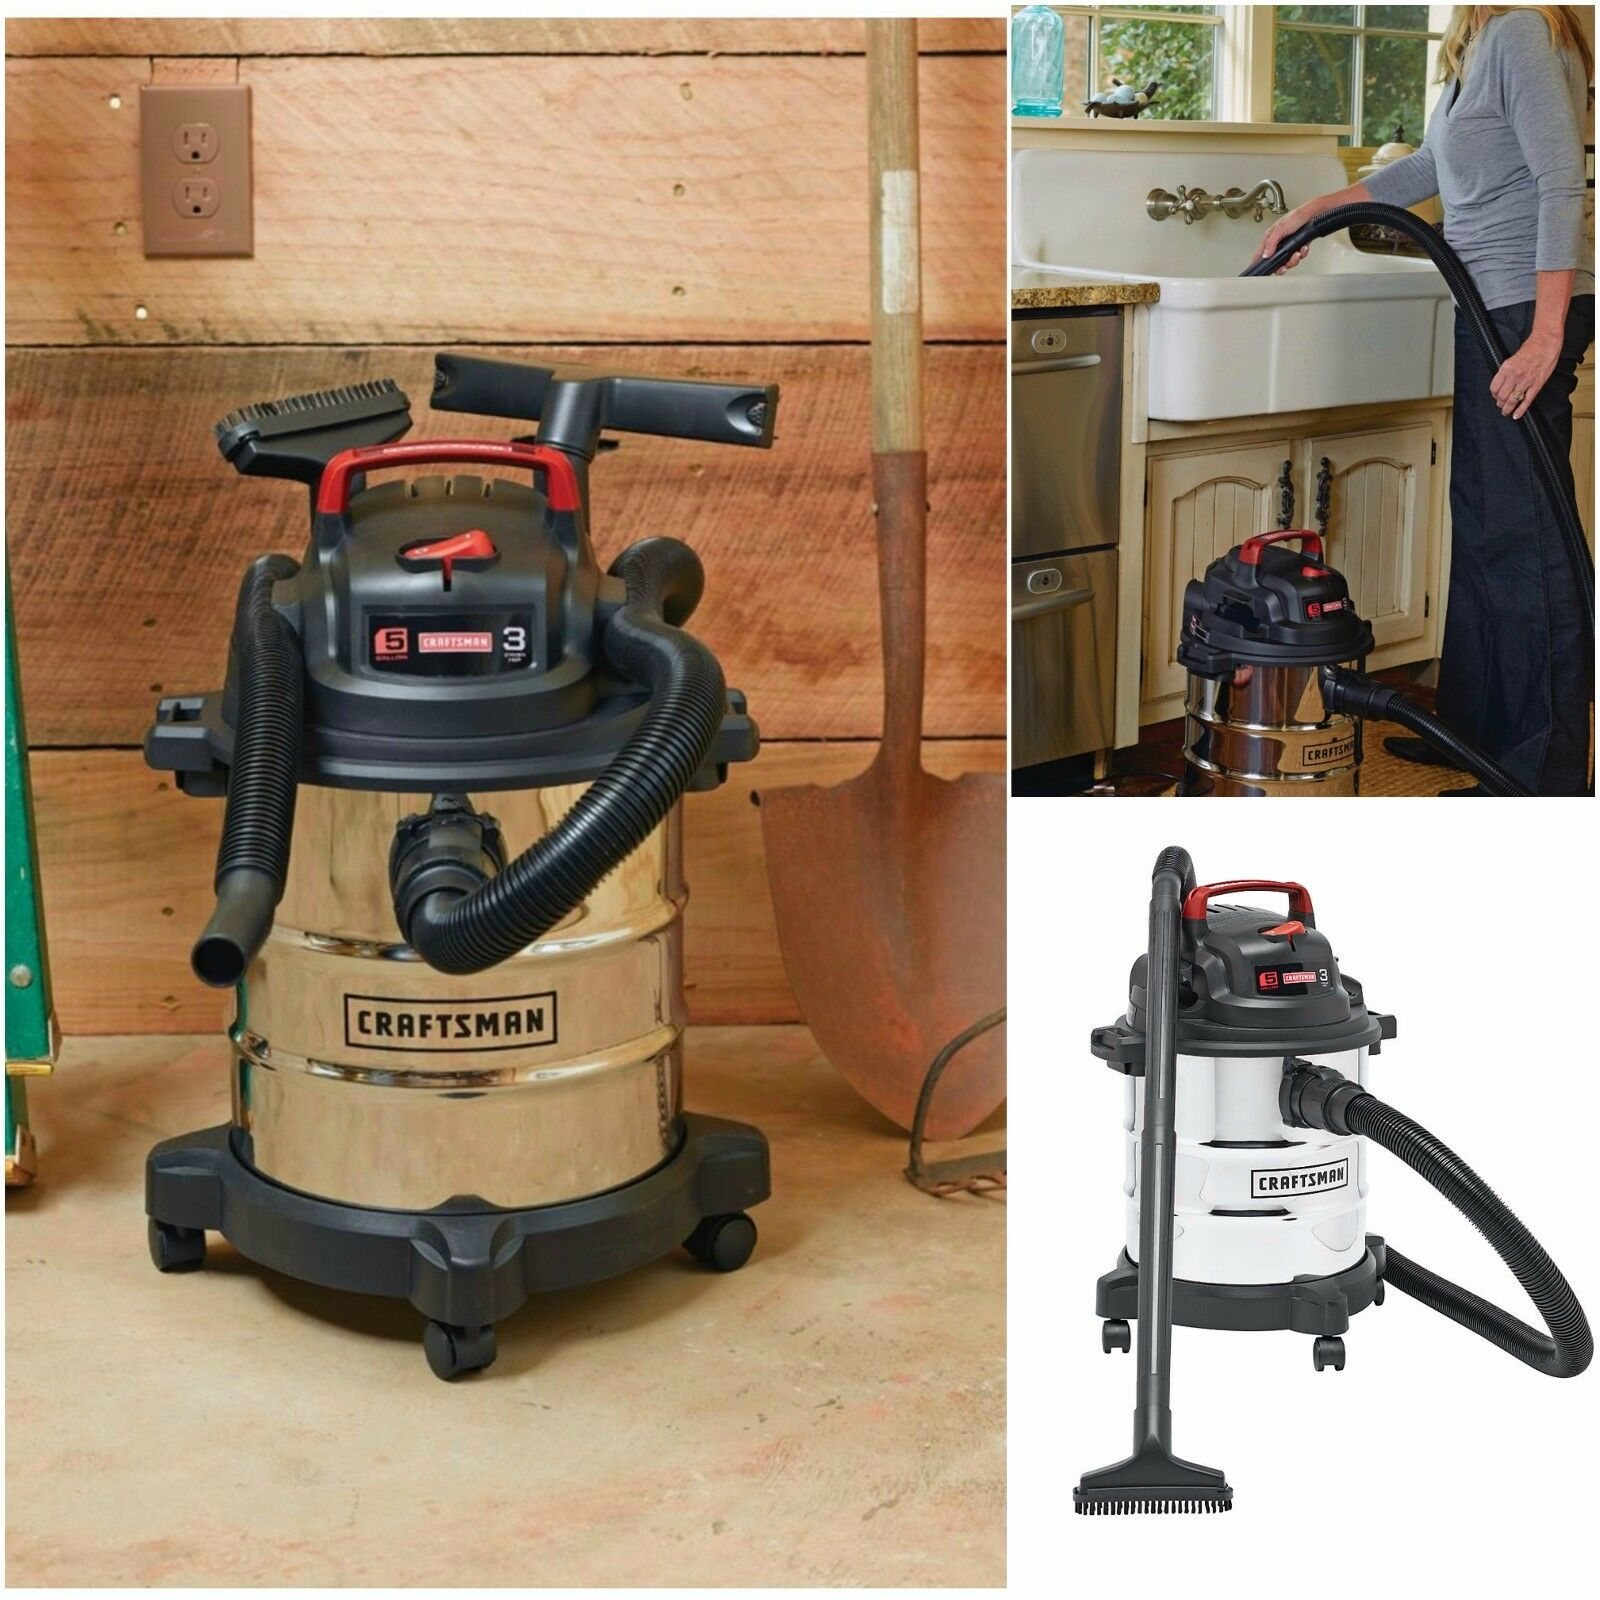 Craftsman Vac 5 Gallon Stainless Steel Wet Dry Vacuum Cleaner Blower 8 Accessory